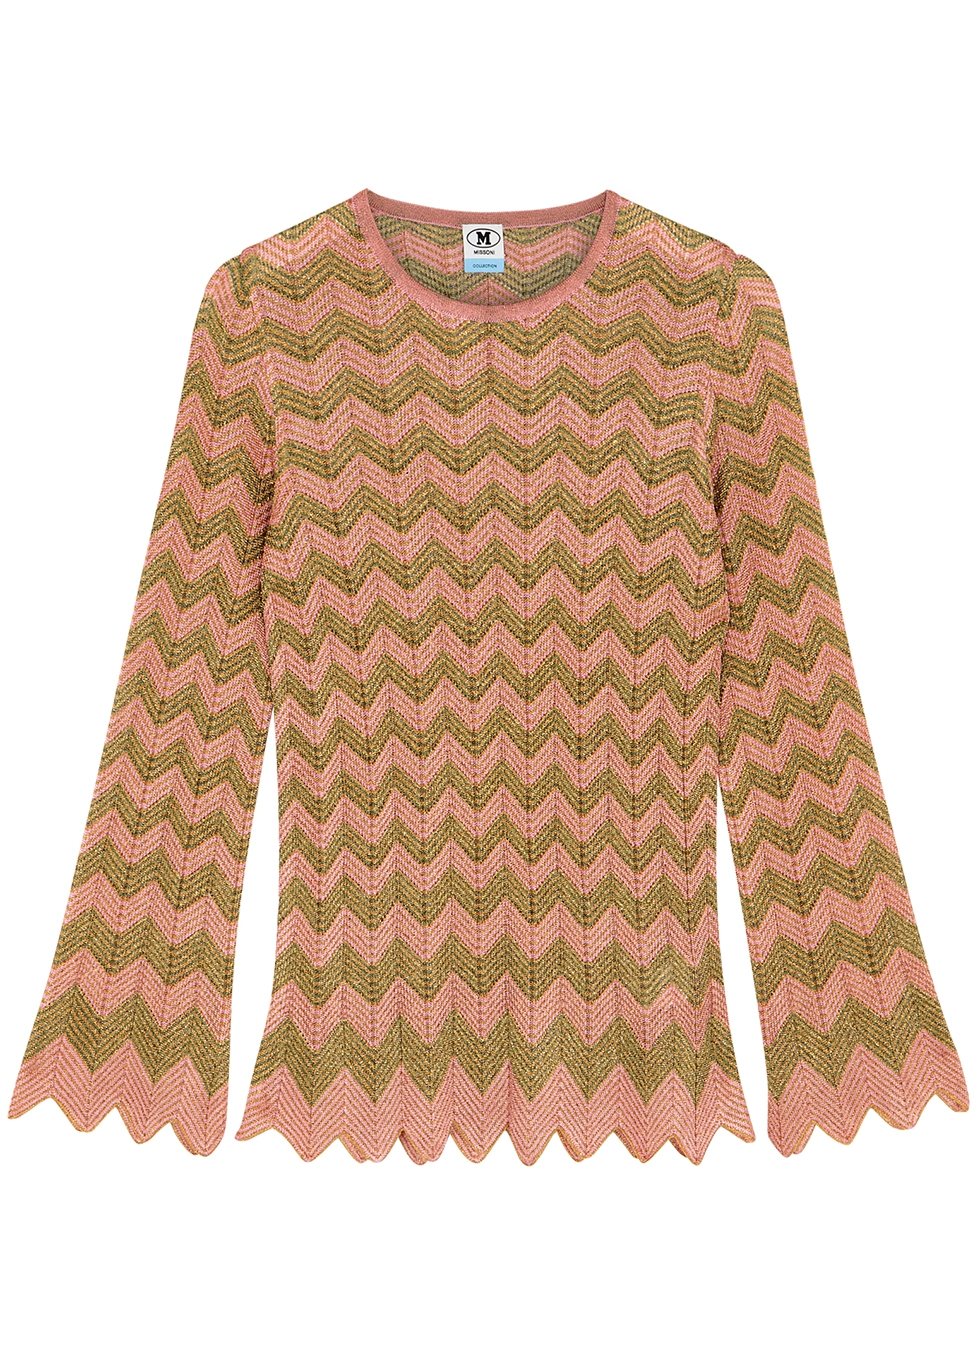 Zigzag metallic-knit top